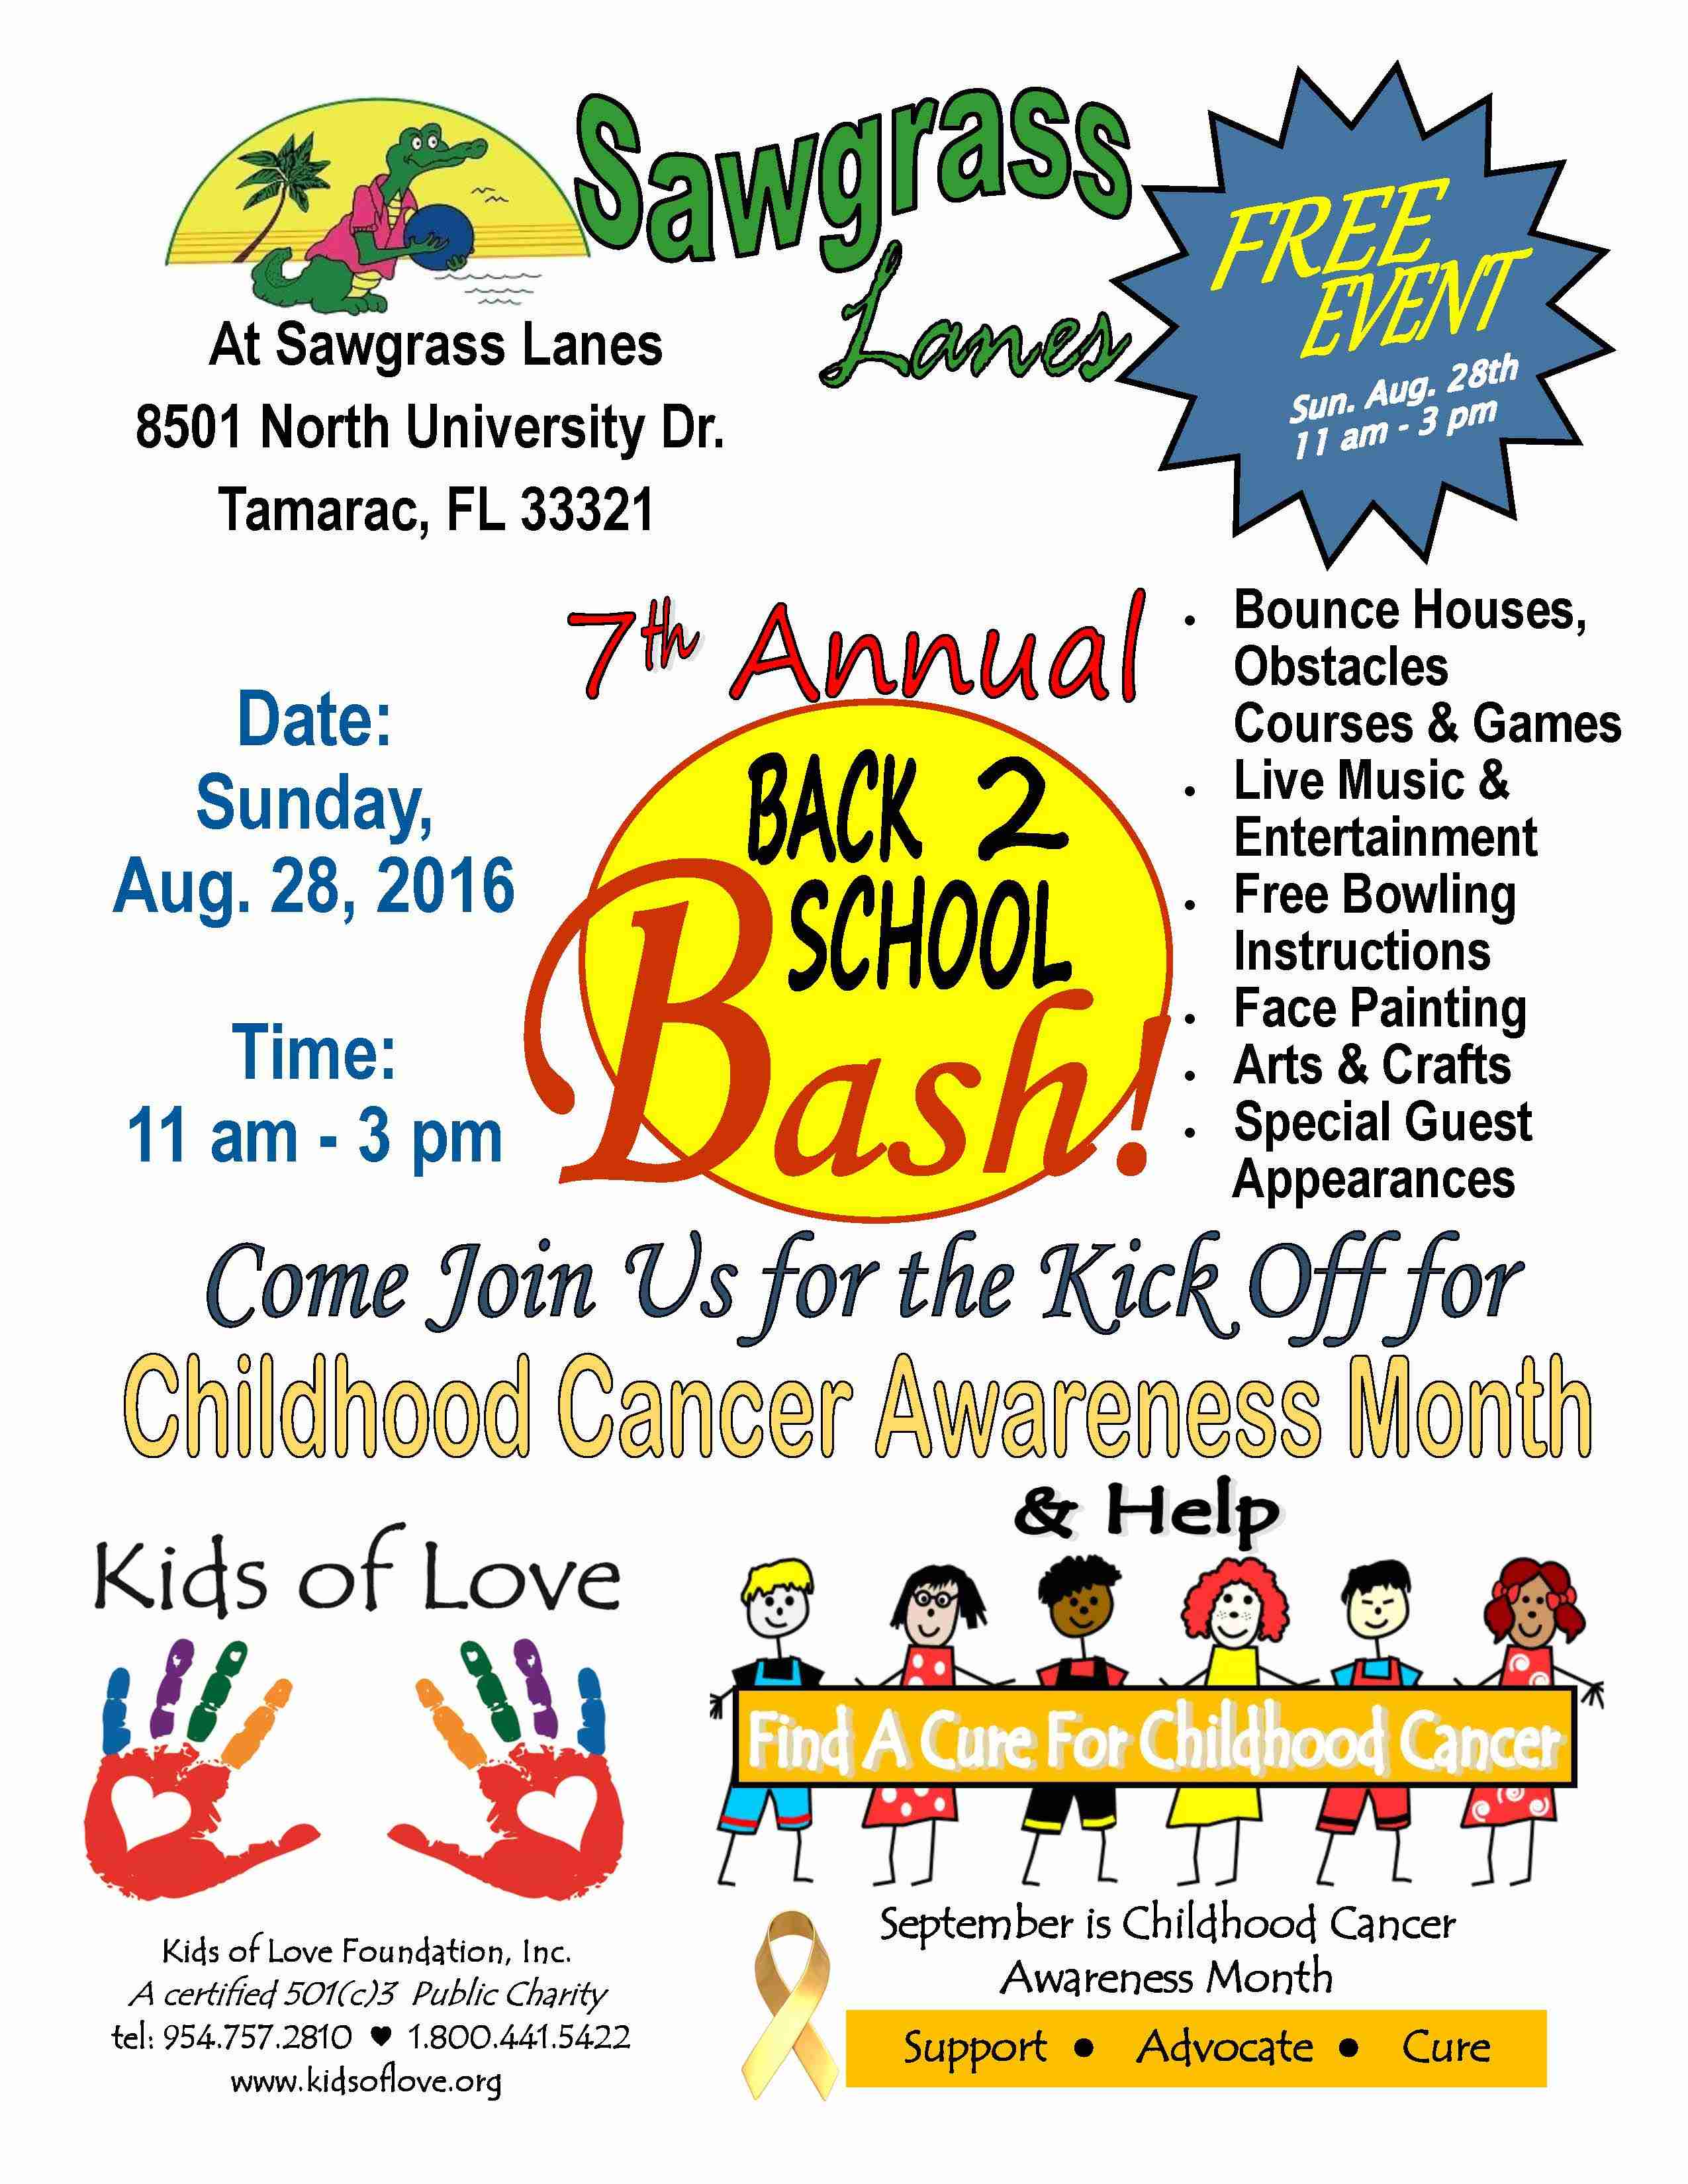 160828 7th Annual Back 2 School Bash